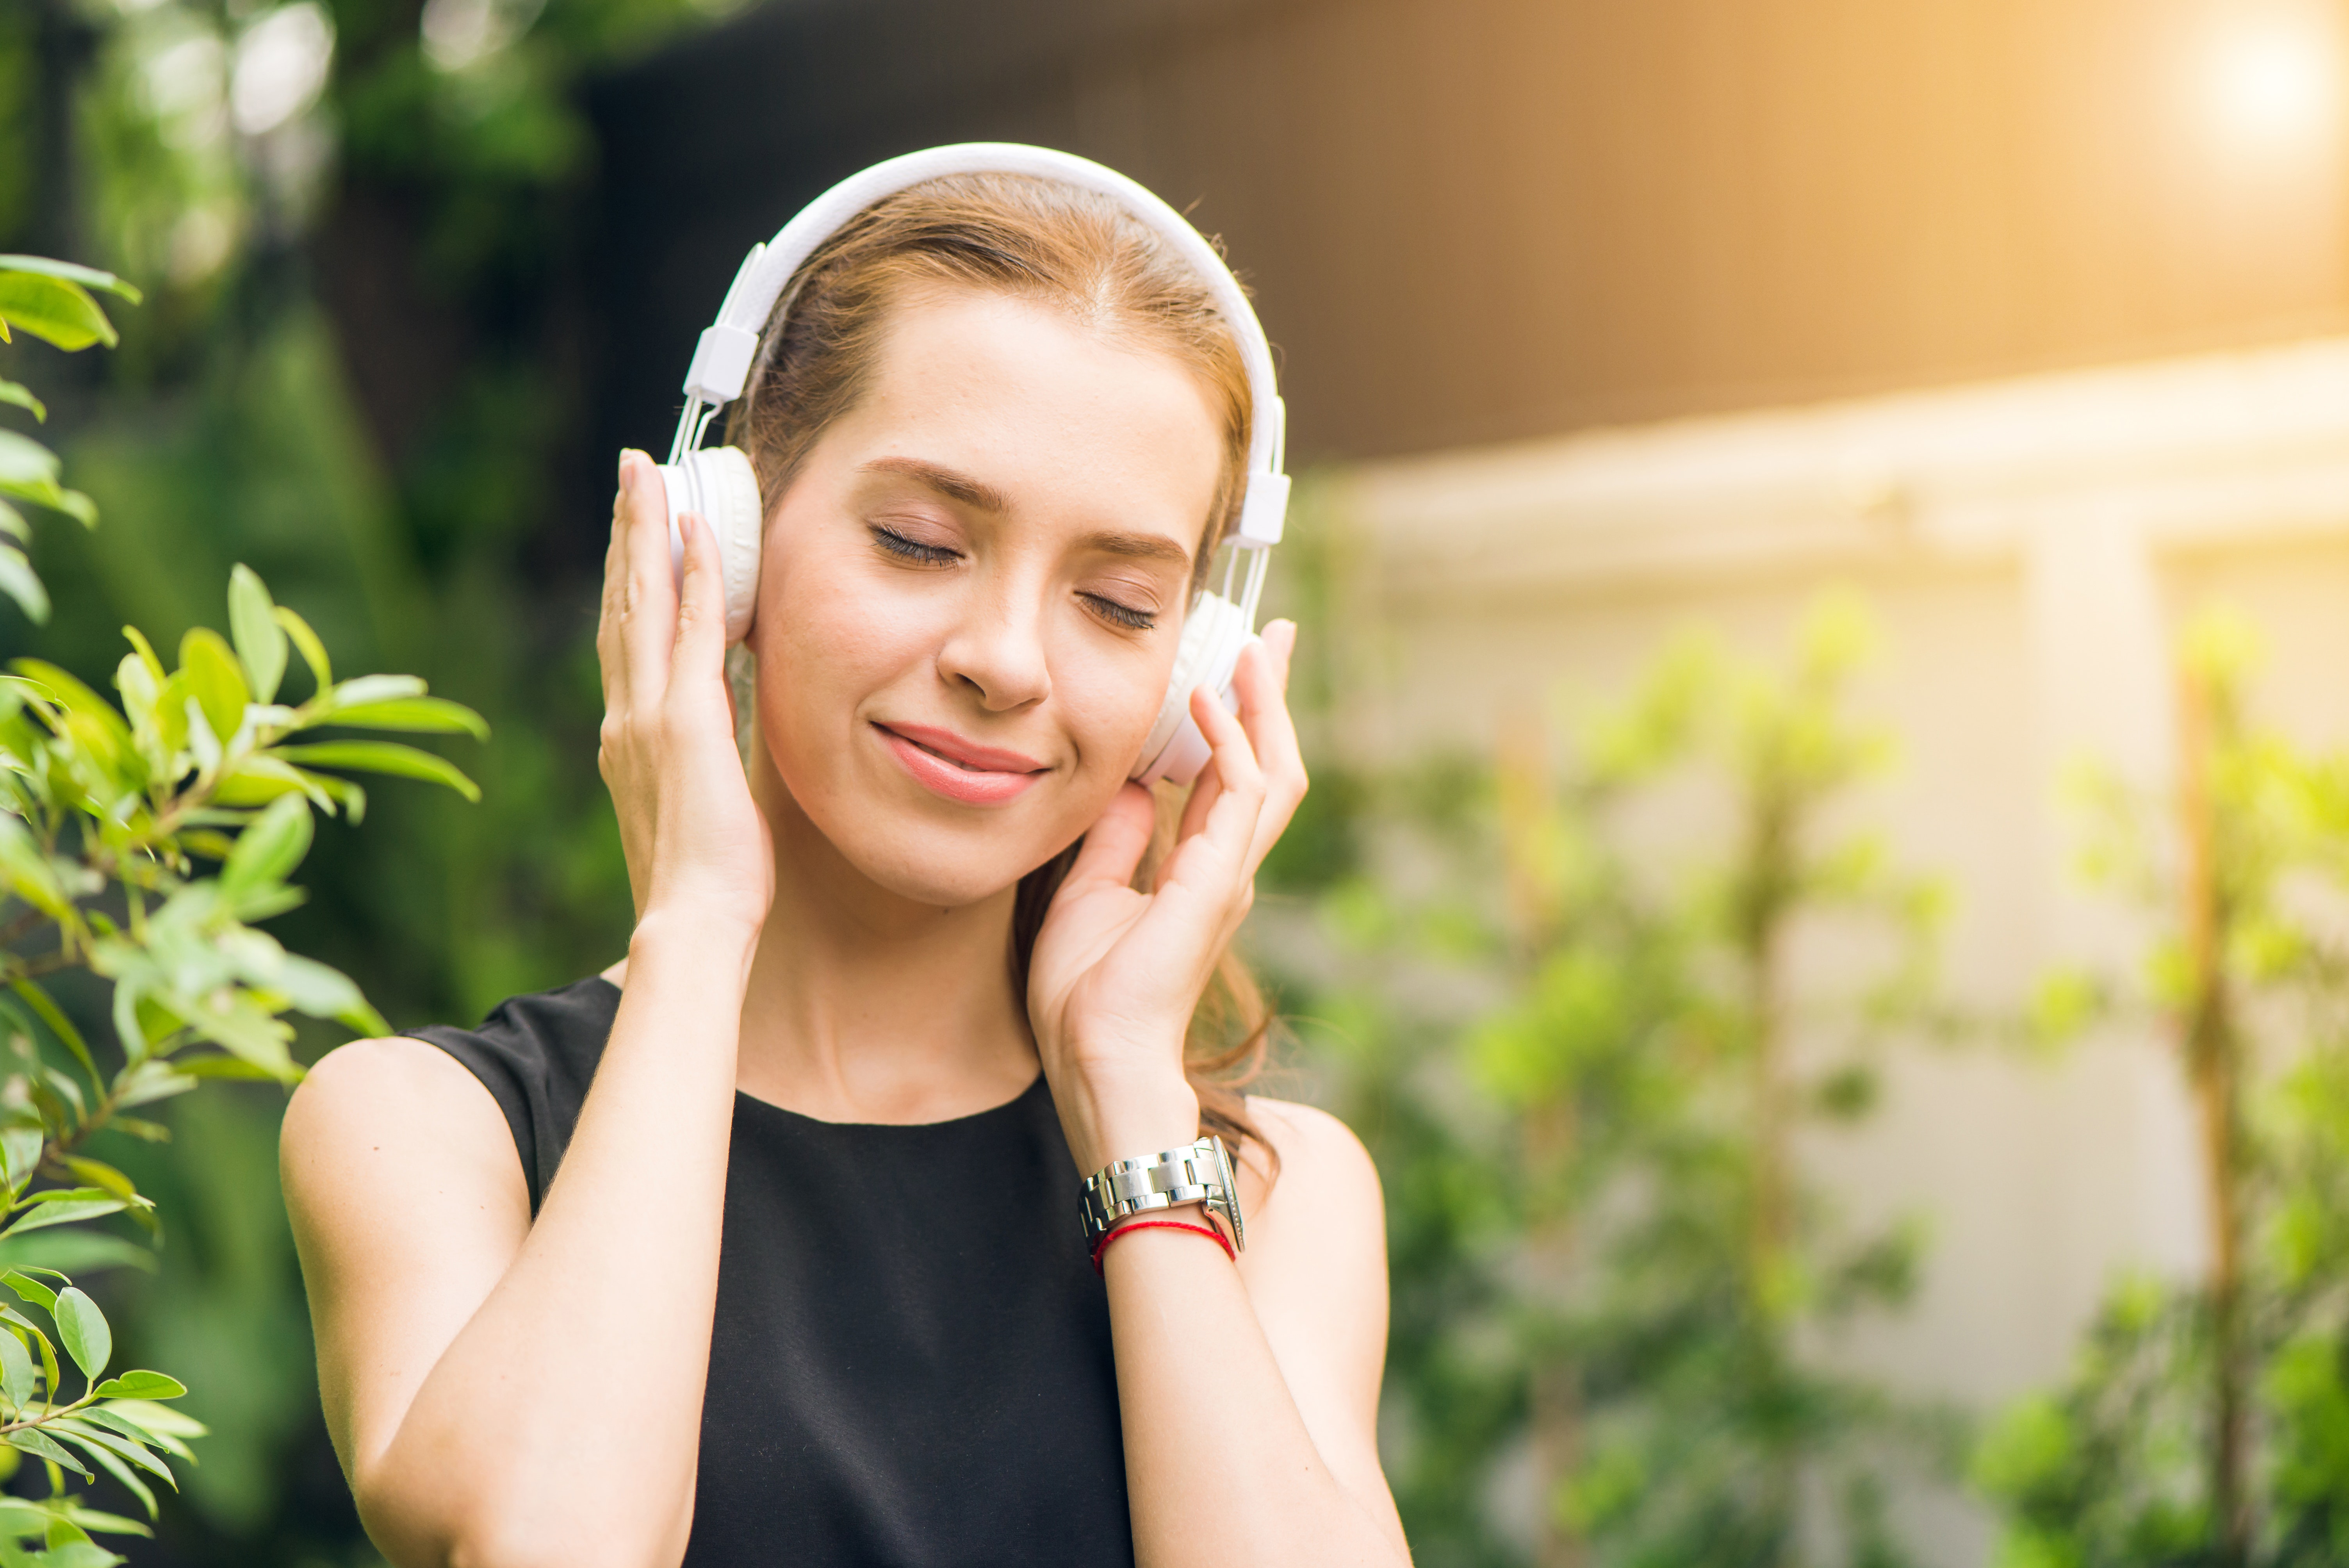 Listening music,smiling,sound,woman,young